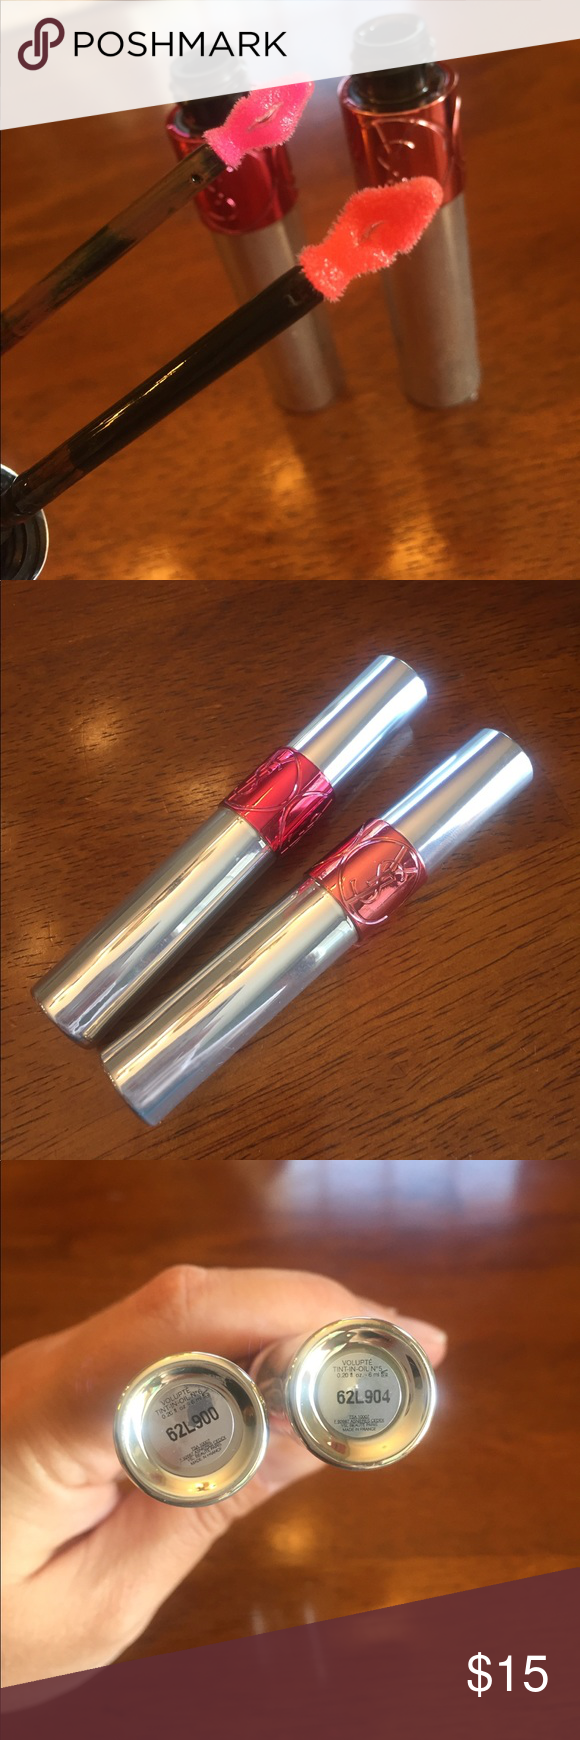 YSL 5   6 Volupté Tint-In-Oil (lot of 2) 2 YSL Volupté Tint-In-Oil in 5  Cherry My Cherie and 6 Peach Me Love. Each used once still in box Yves  Saint Laurent ... 27a10c2df0c